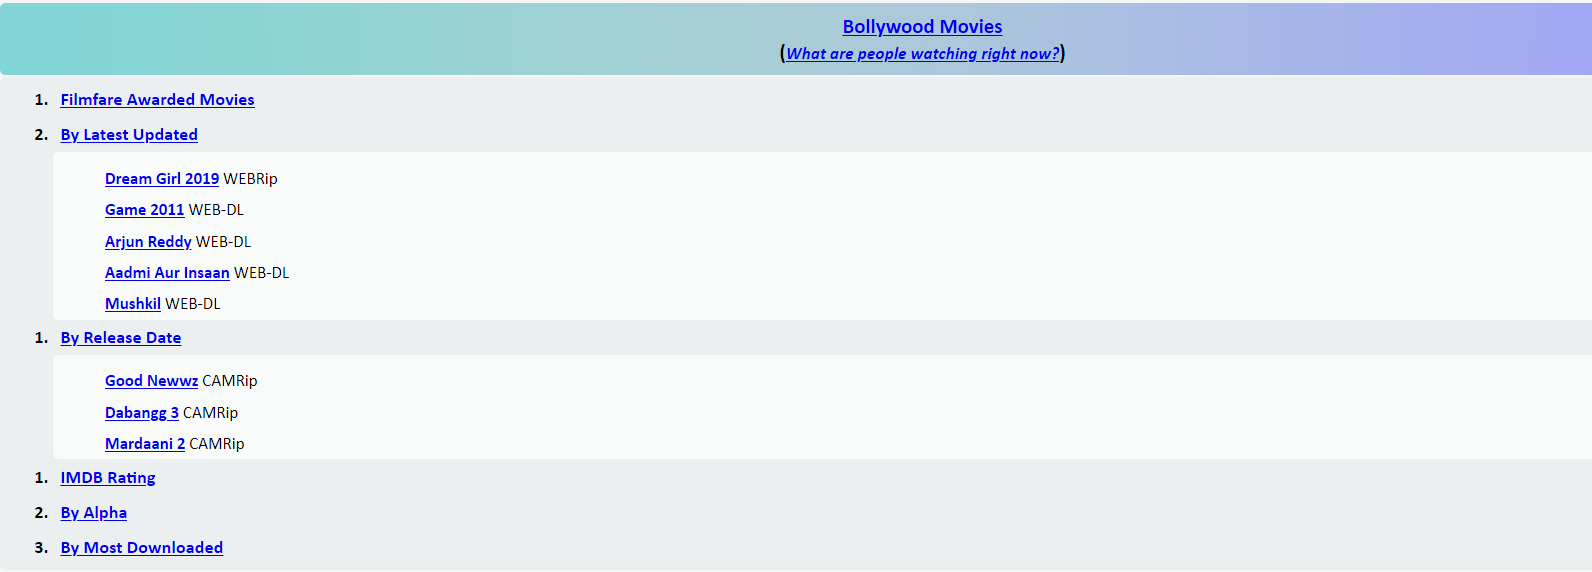 fz movies Bollywood